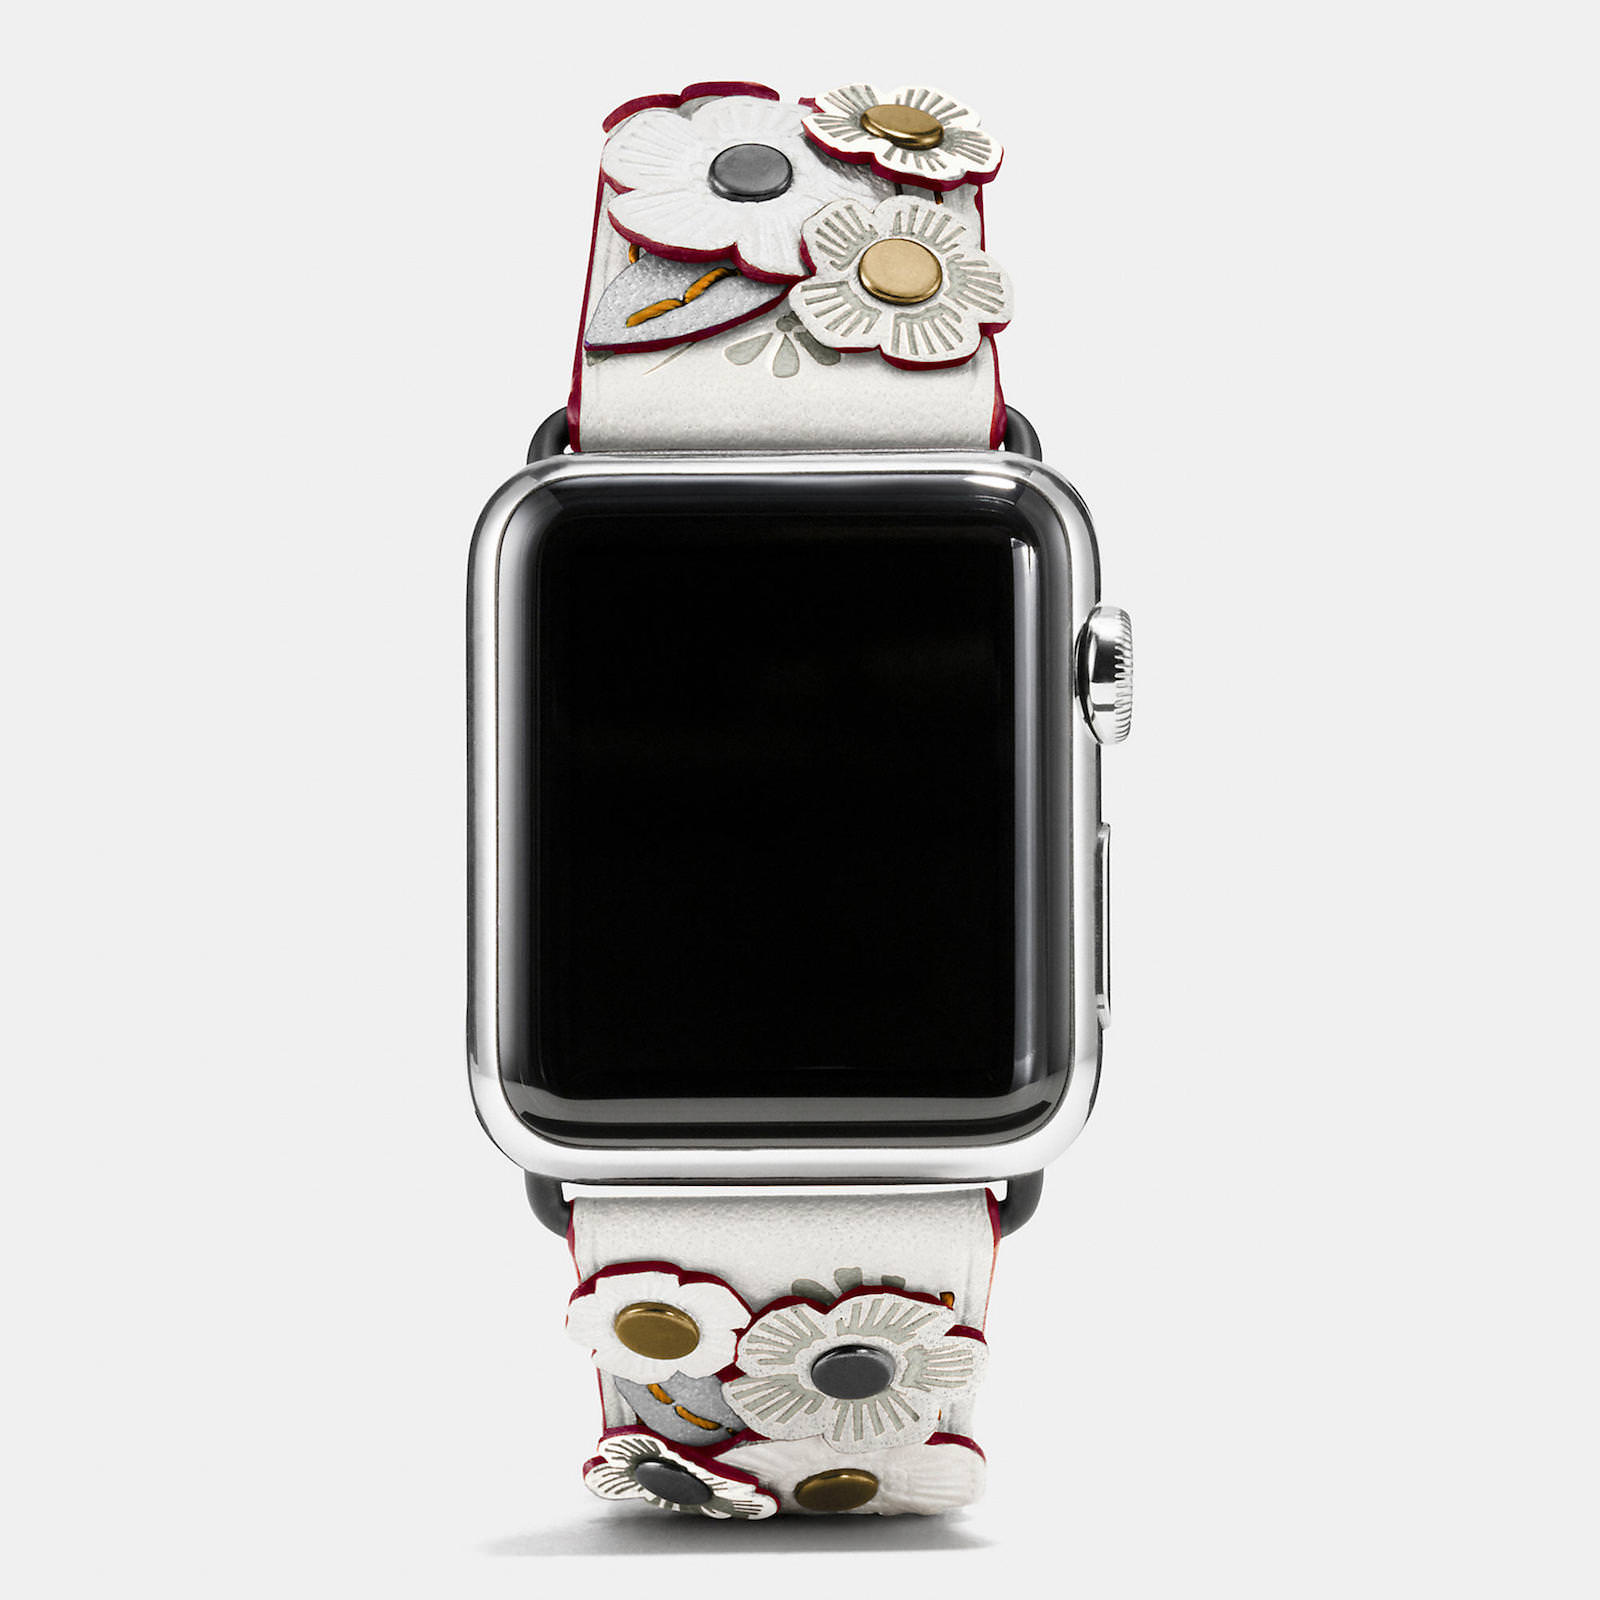 Apple-Watch-Coach-Band-Autumn-Season-11.jpeg